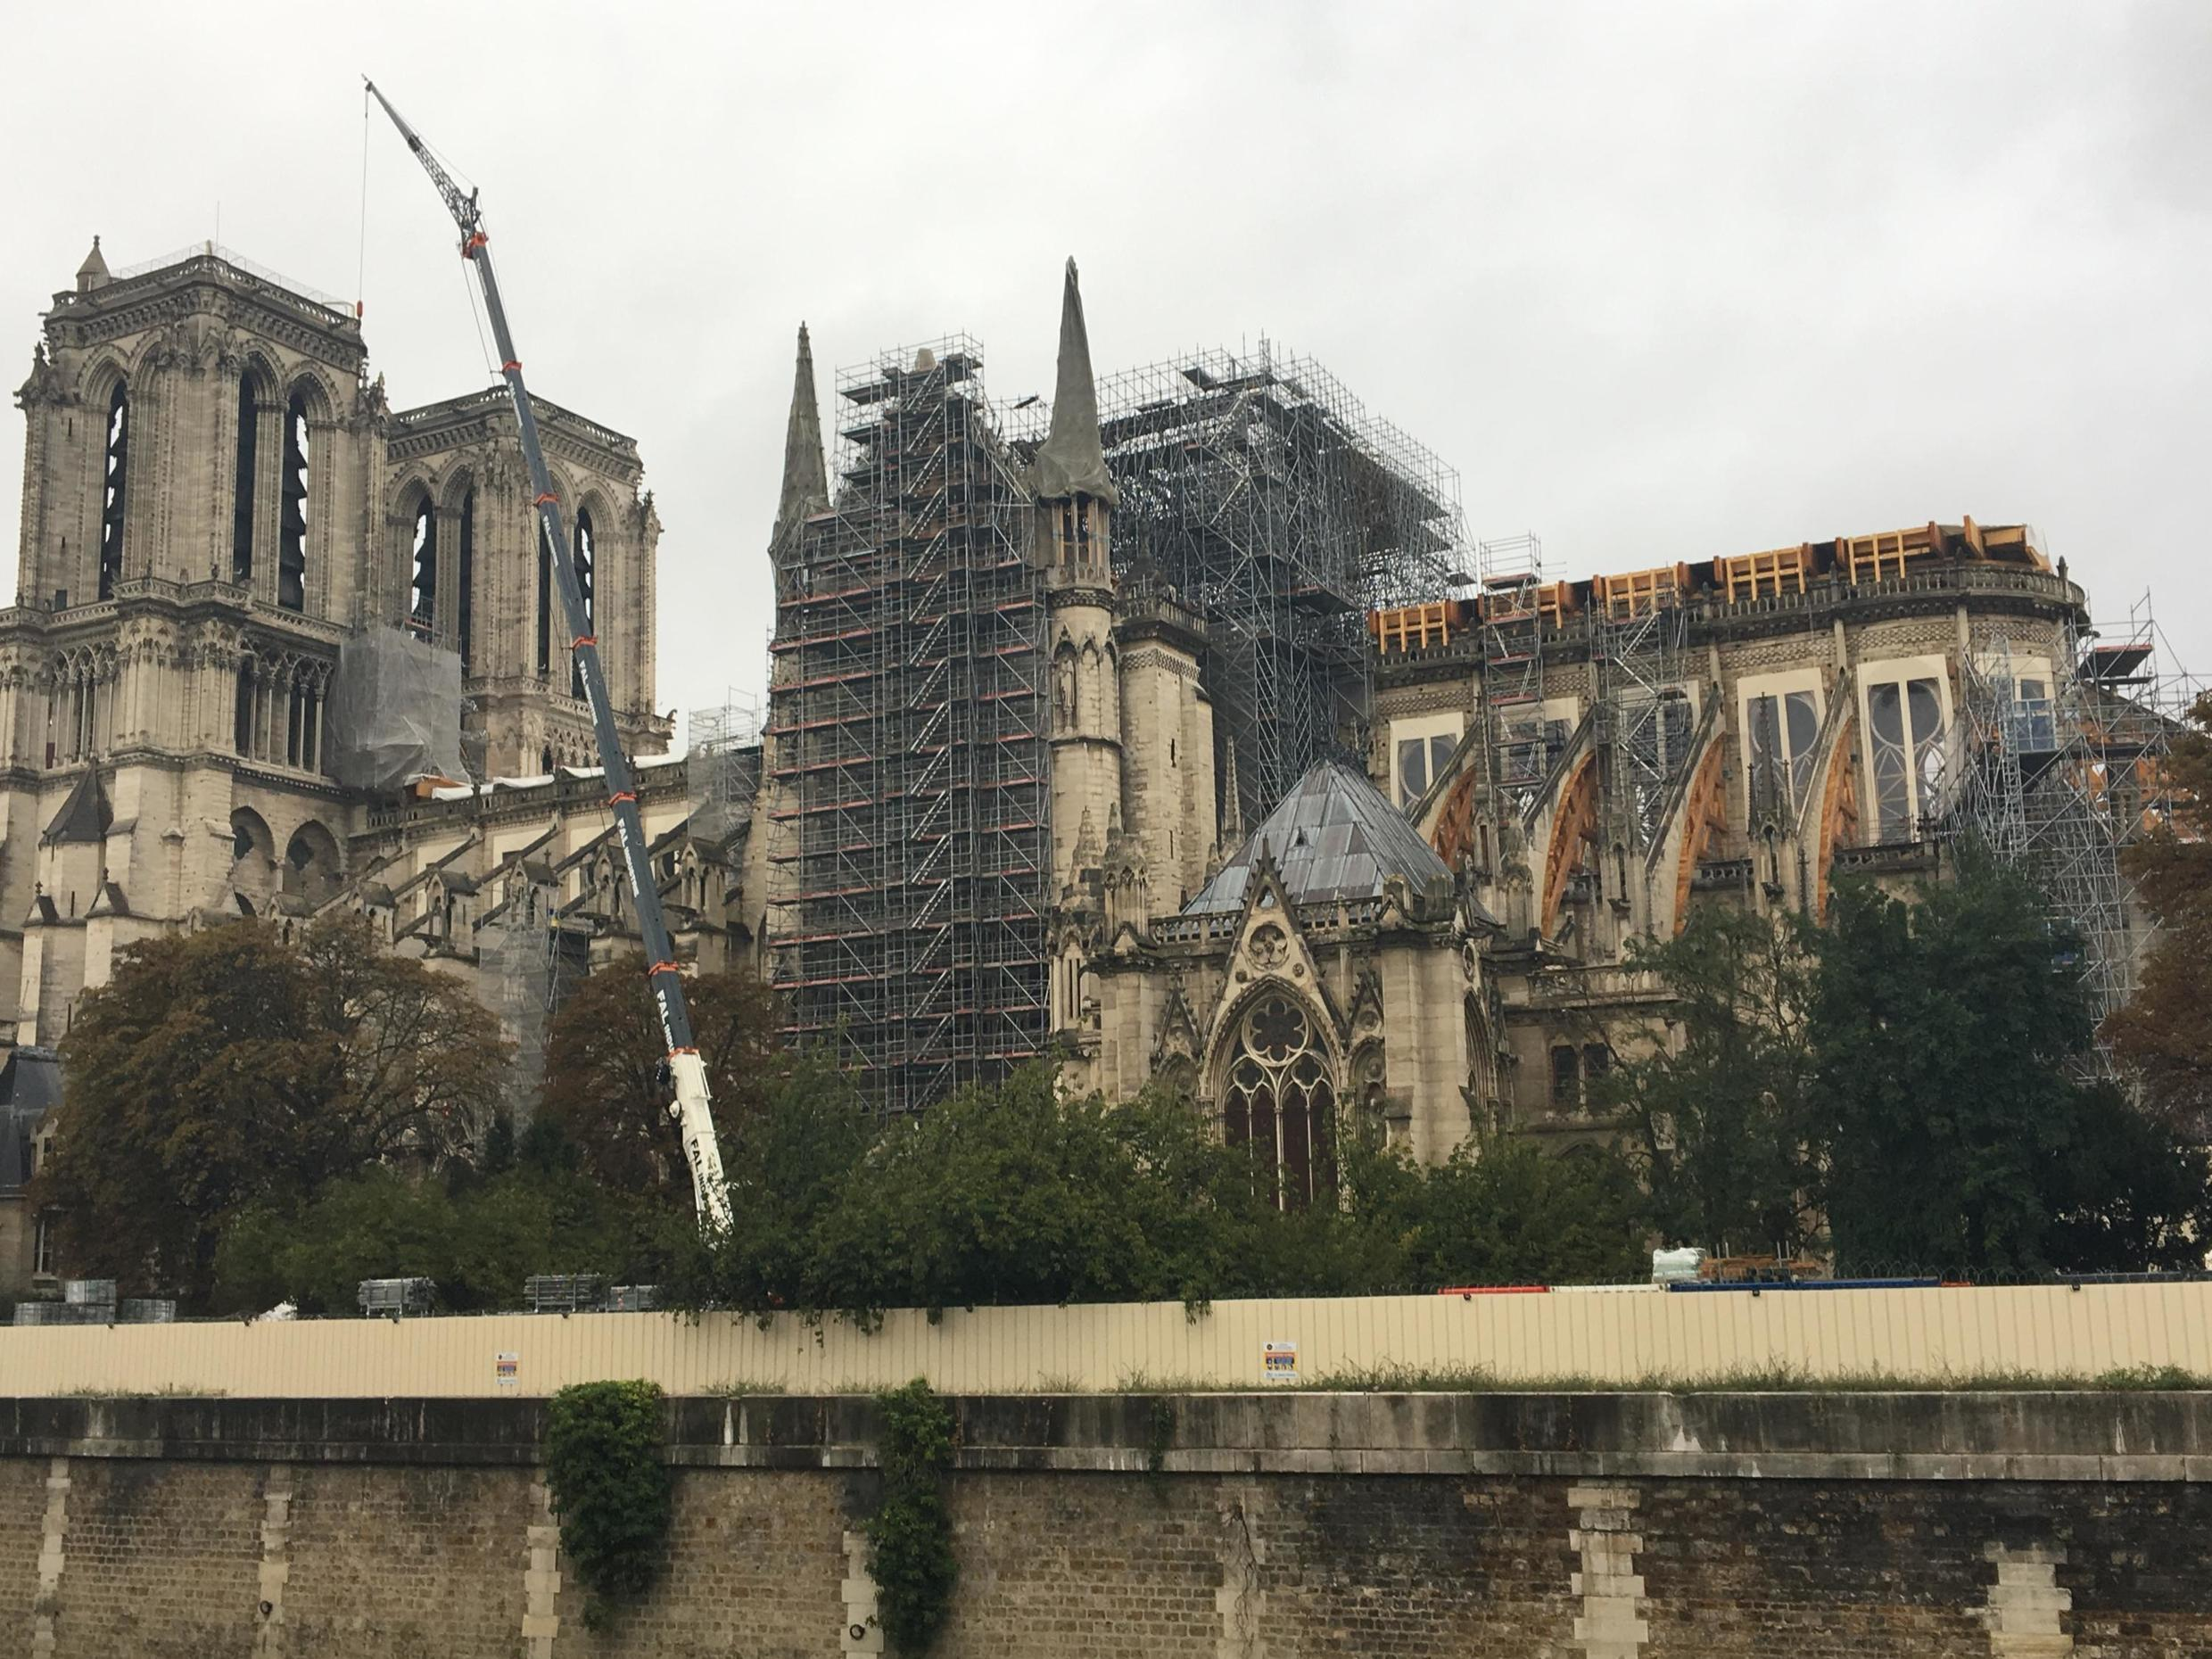 Notre Dame will be closed for at least five years